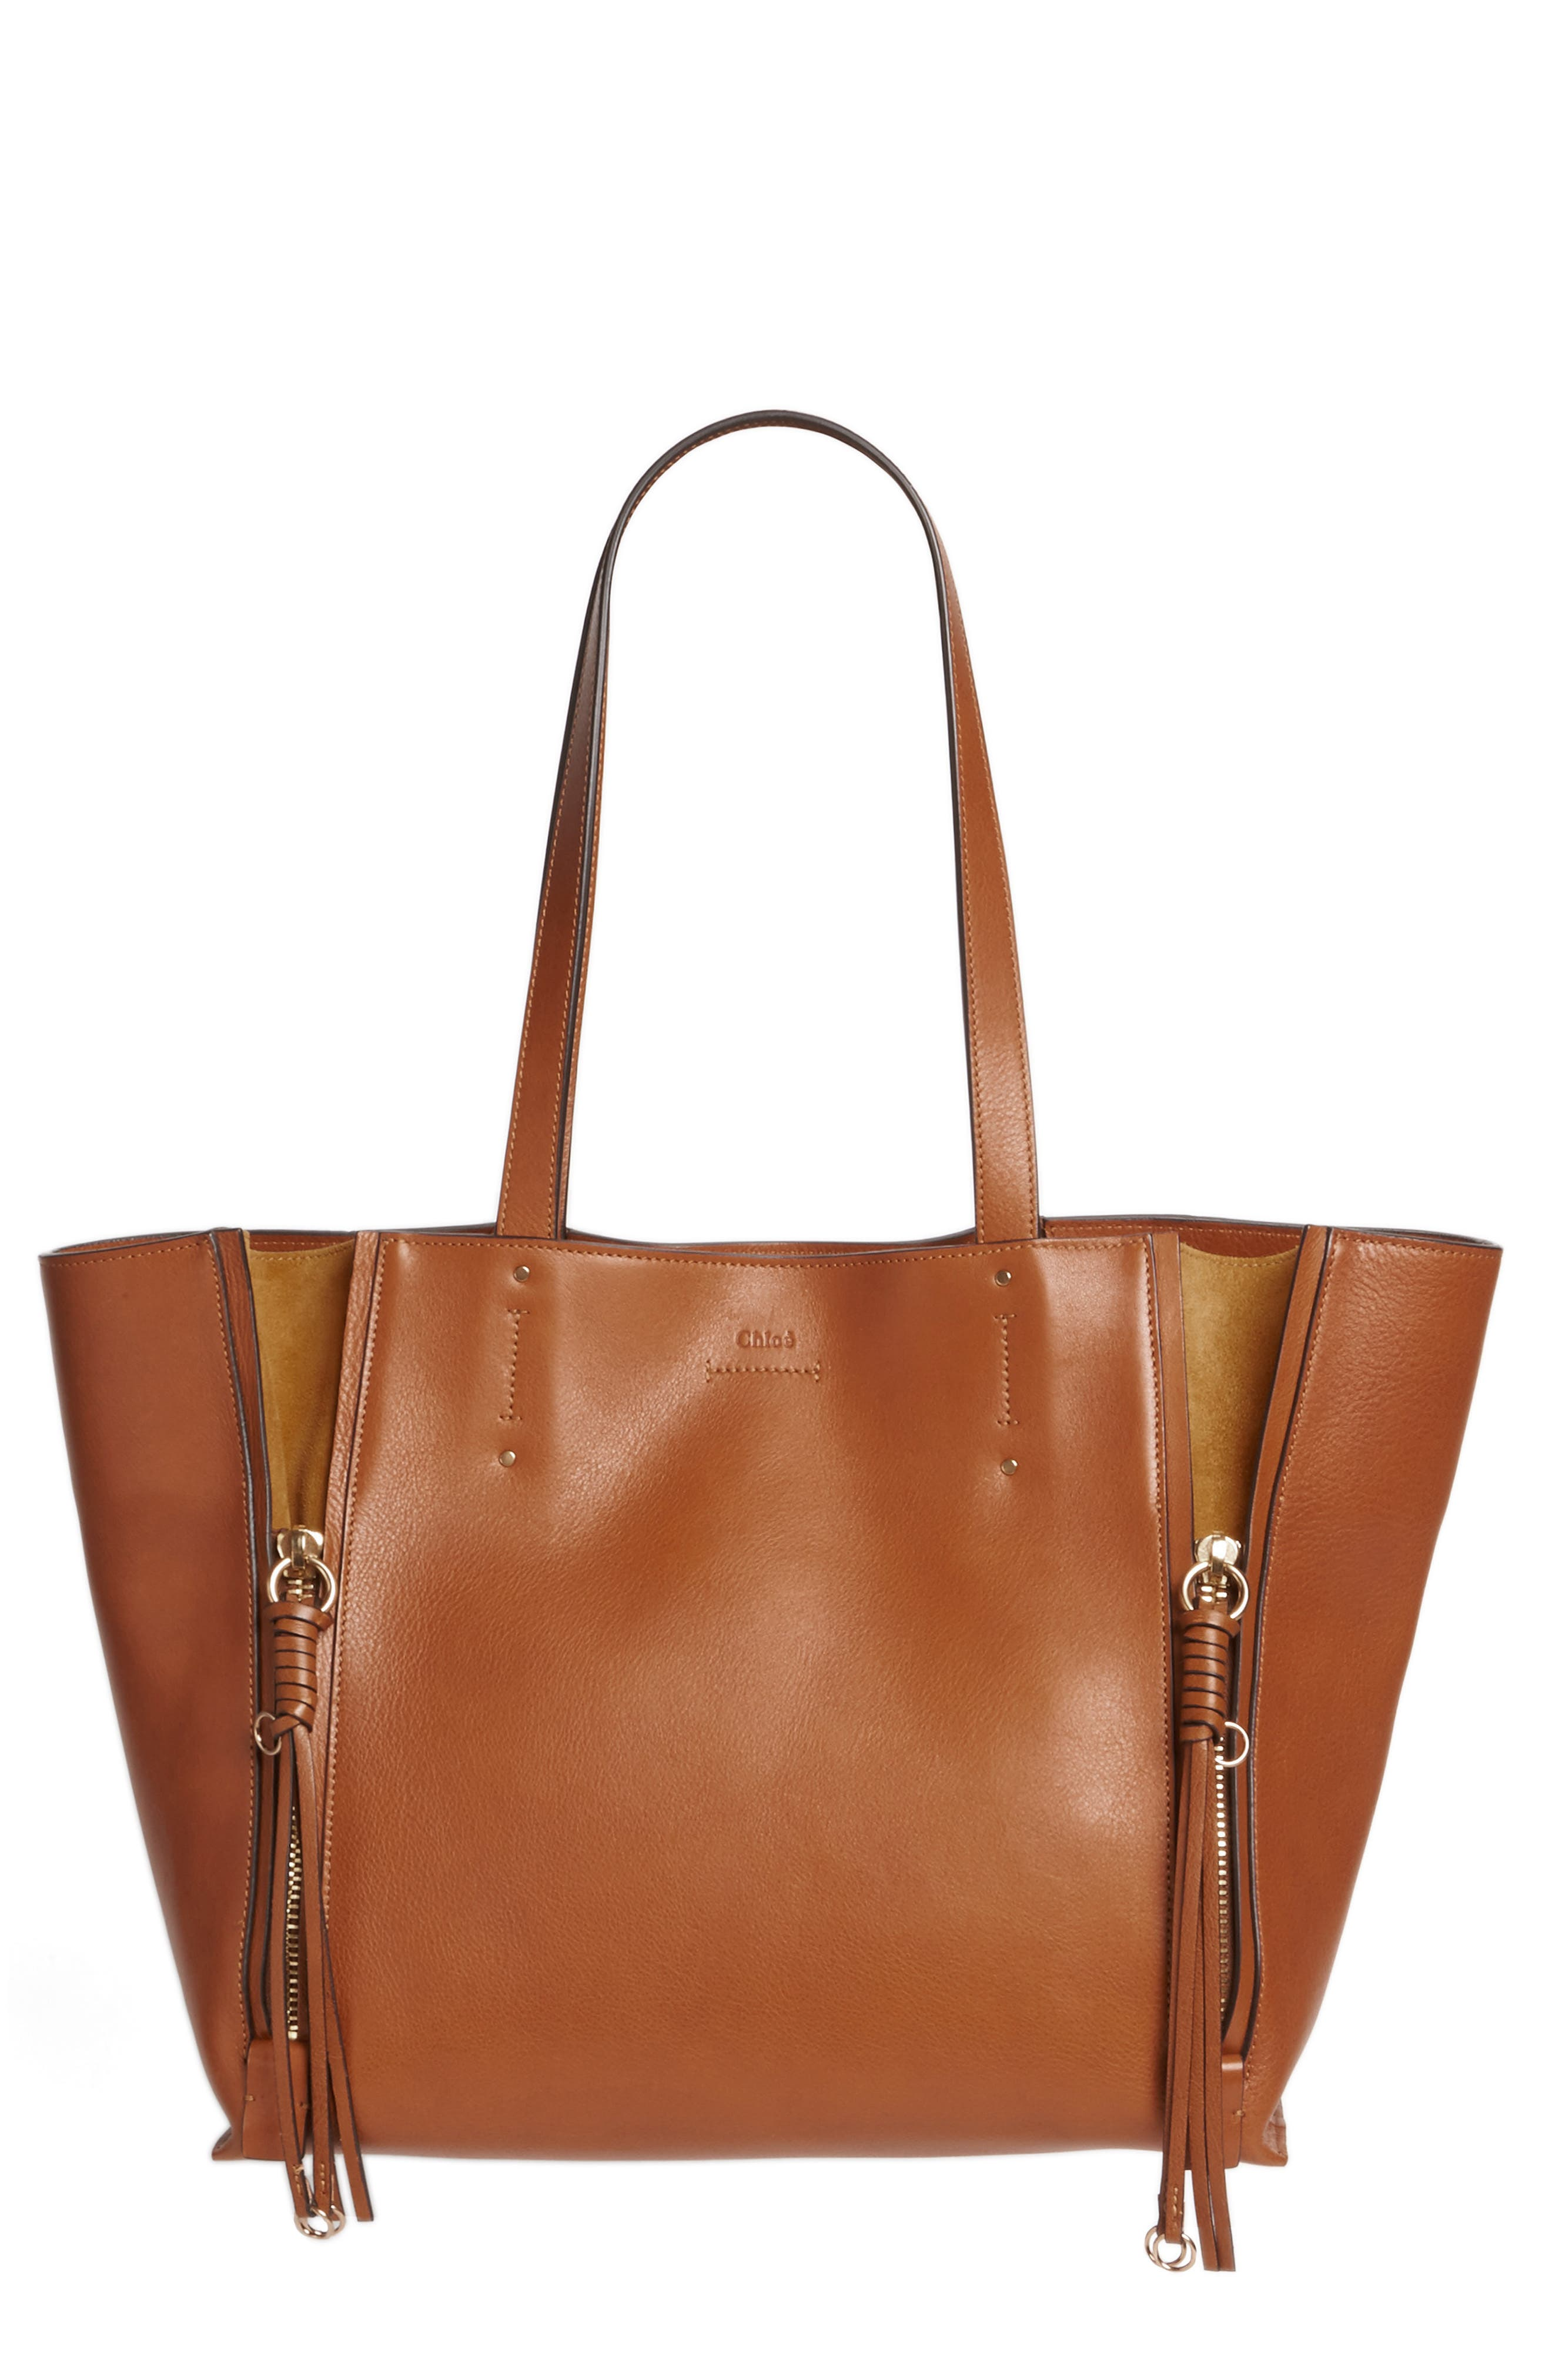 Medium Milo Calfskin Leather Tote,                             Alternate thumbnail 6, color,                             Caramel